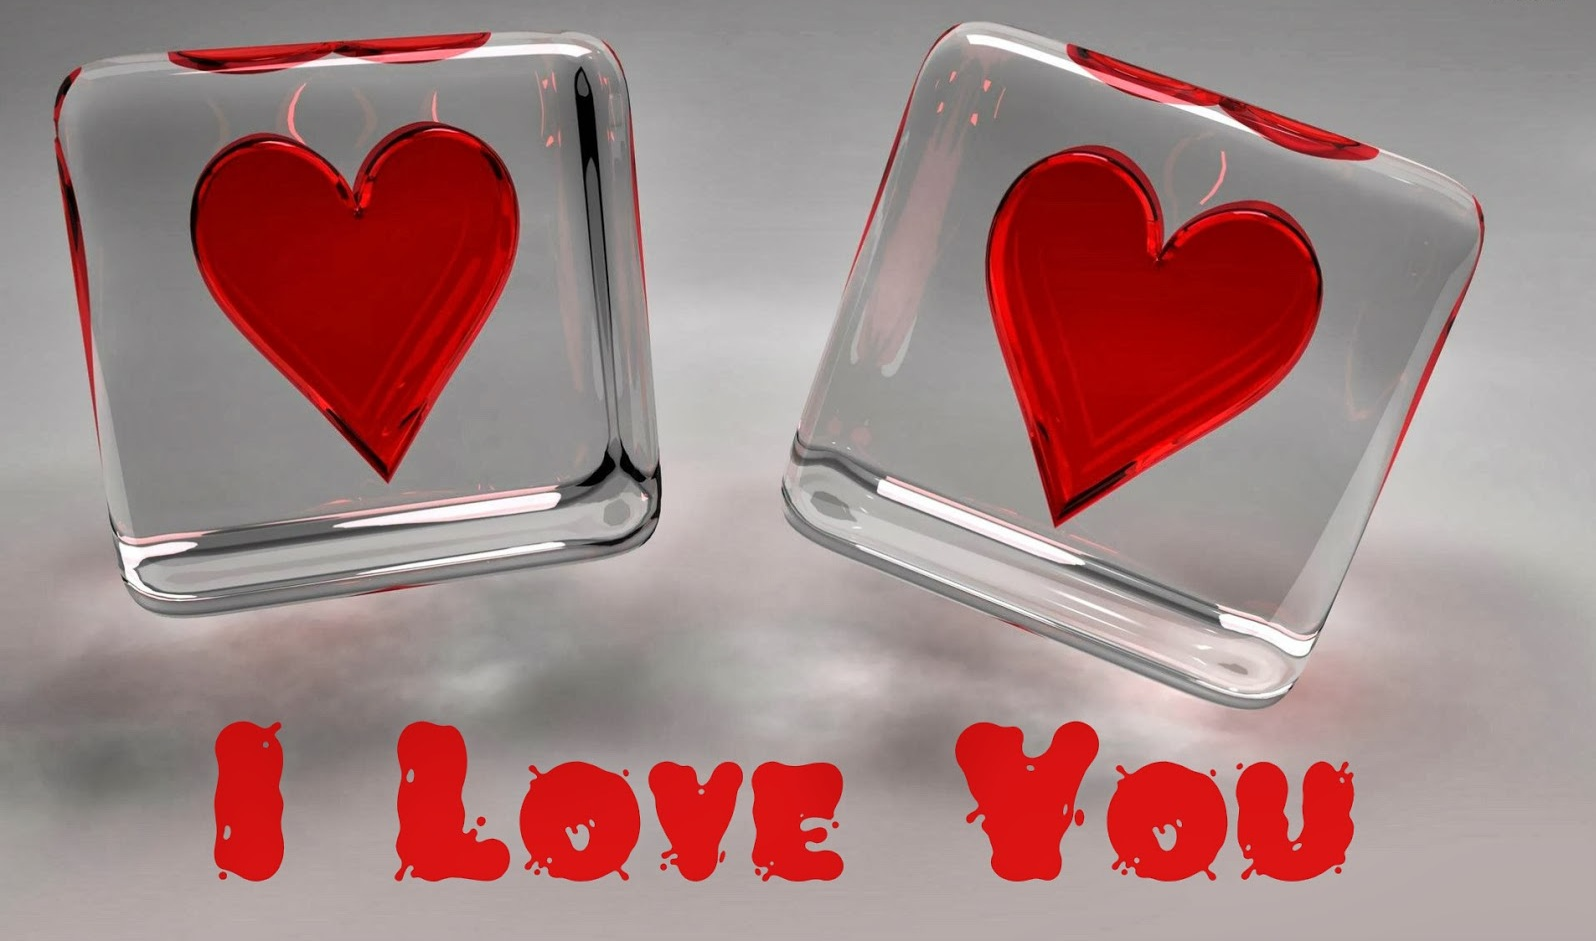 I Love You You Love Me Wallpaper : I Love You Wallpapers, Pictures, Images